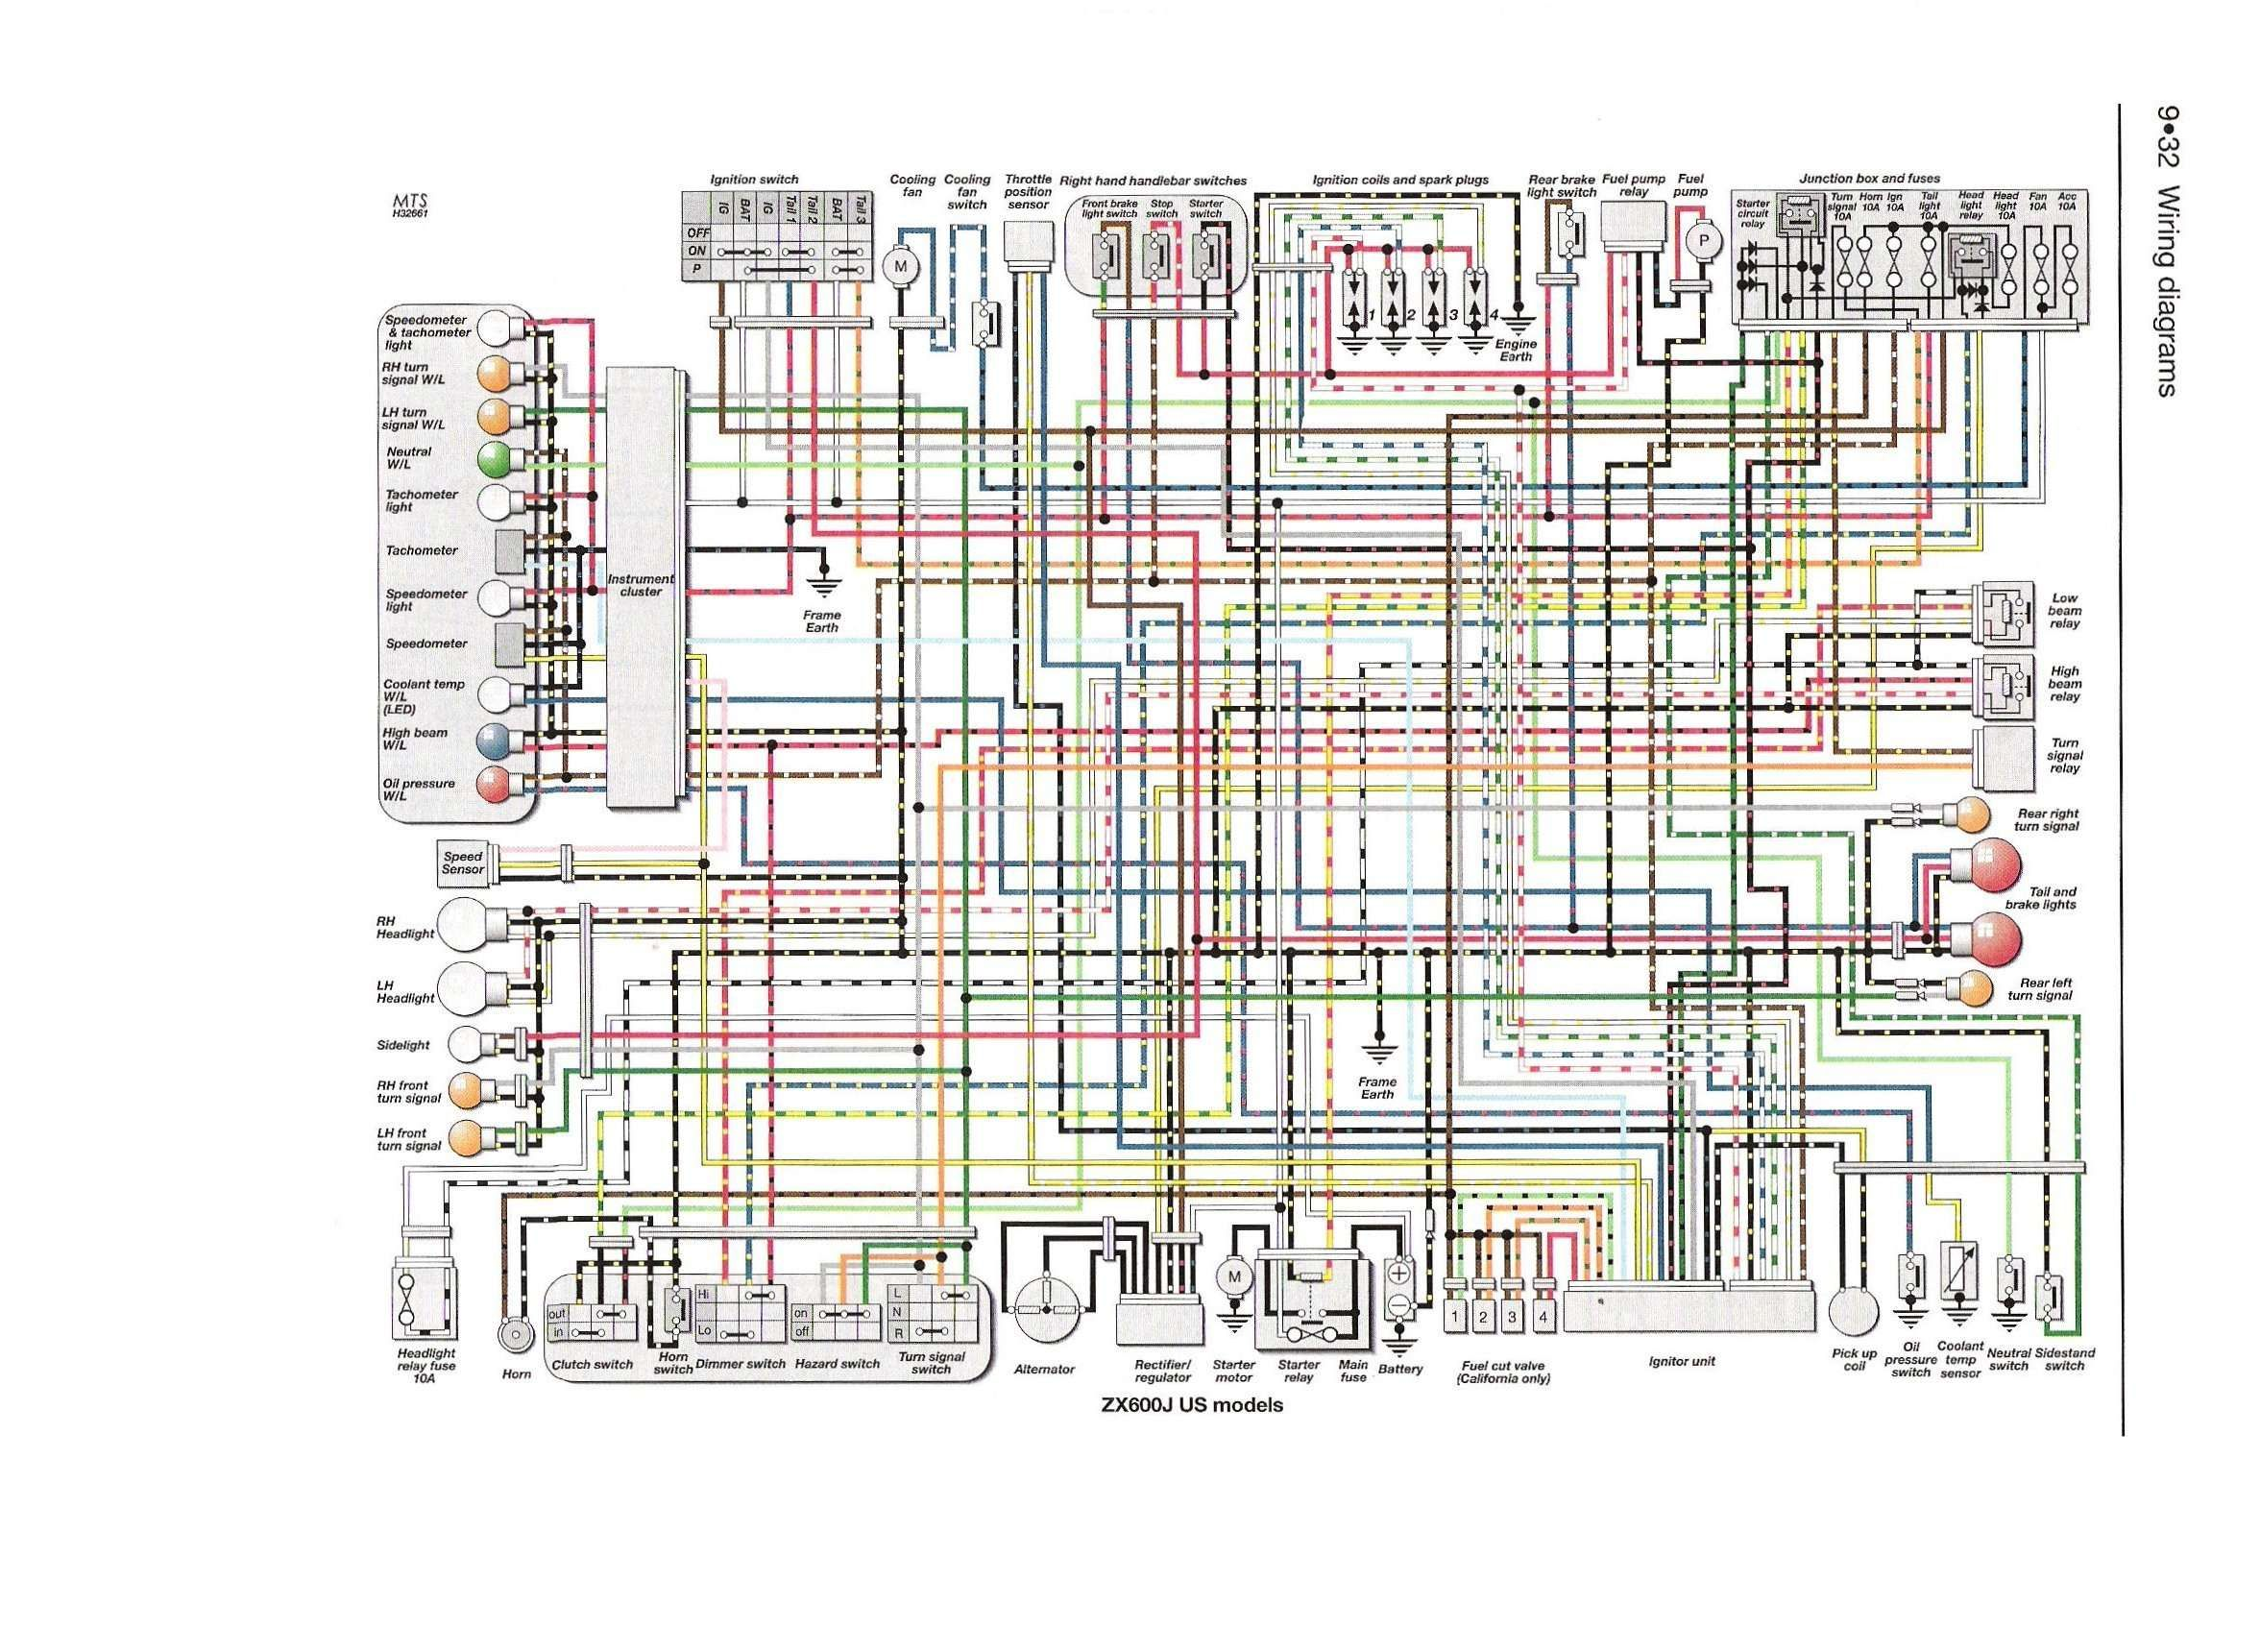 hight resolution of zx6r engine diagram wiring diagram database 2004 ninja 636 engine diagram